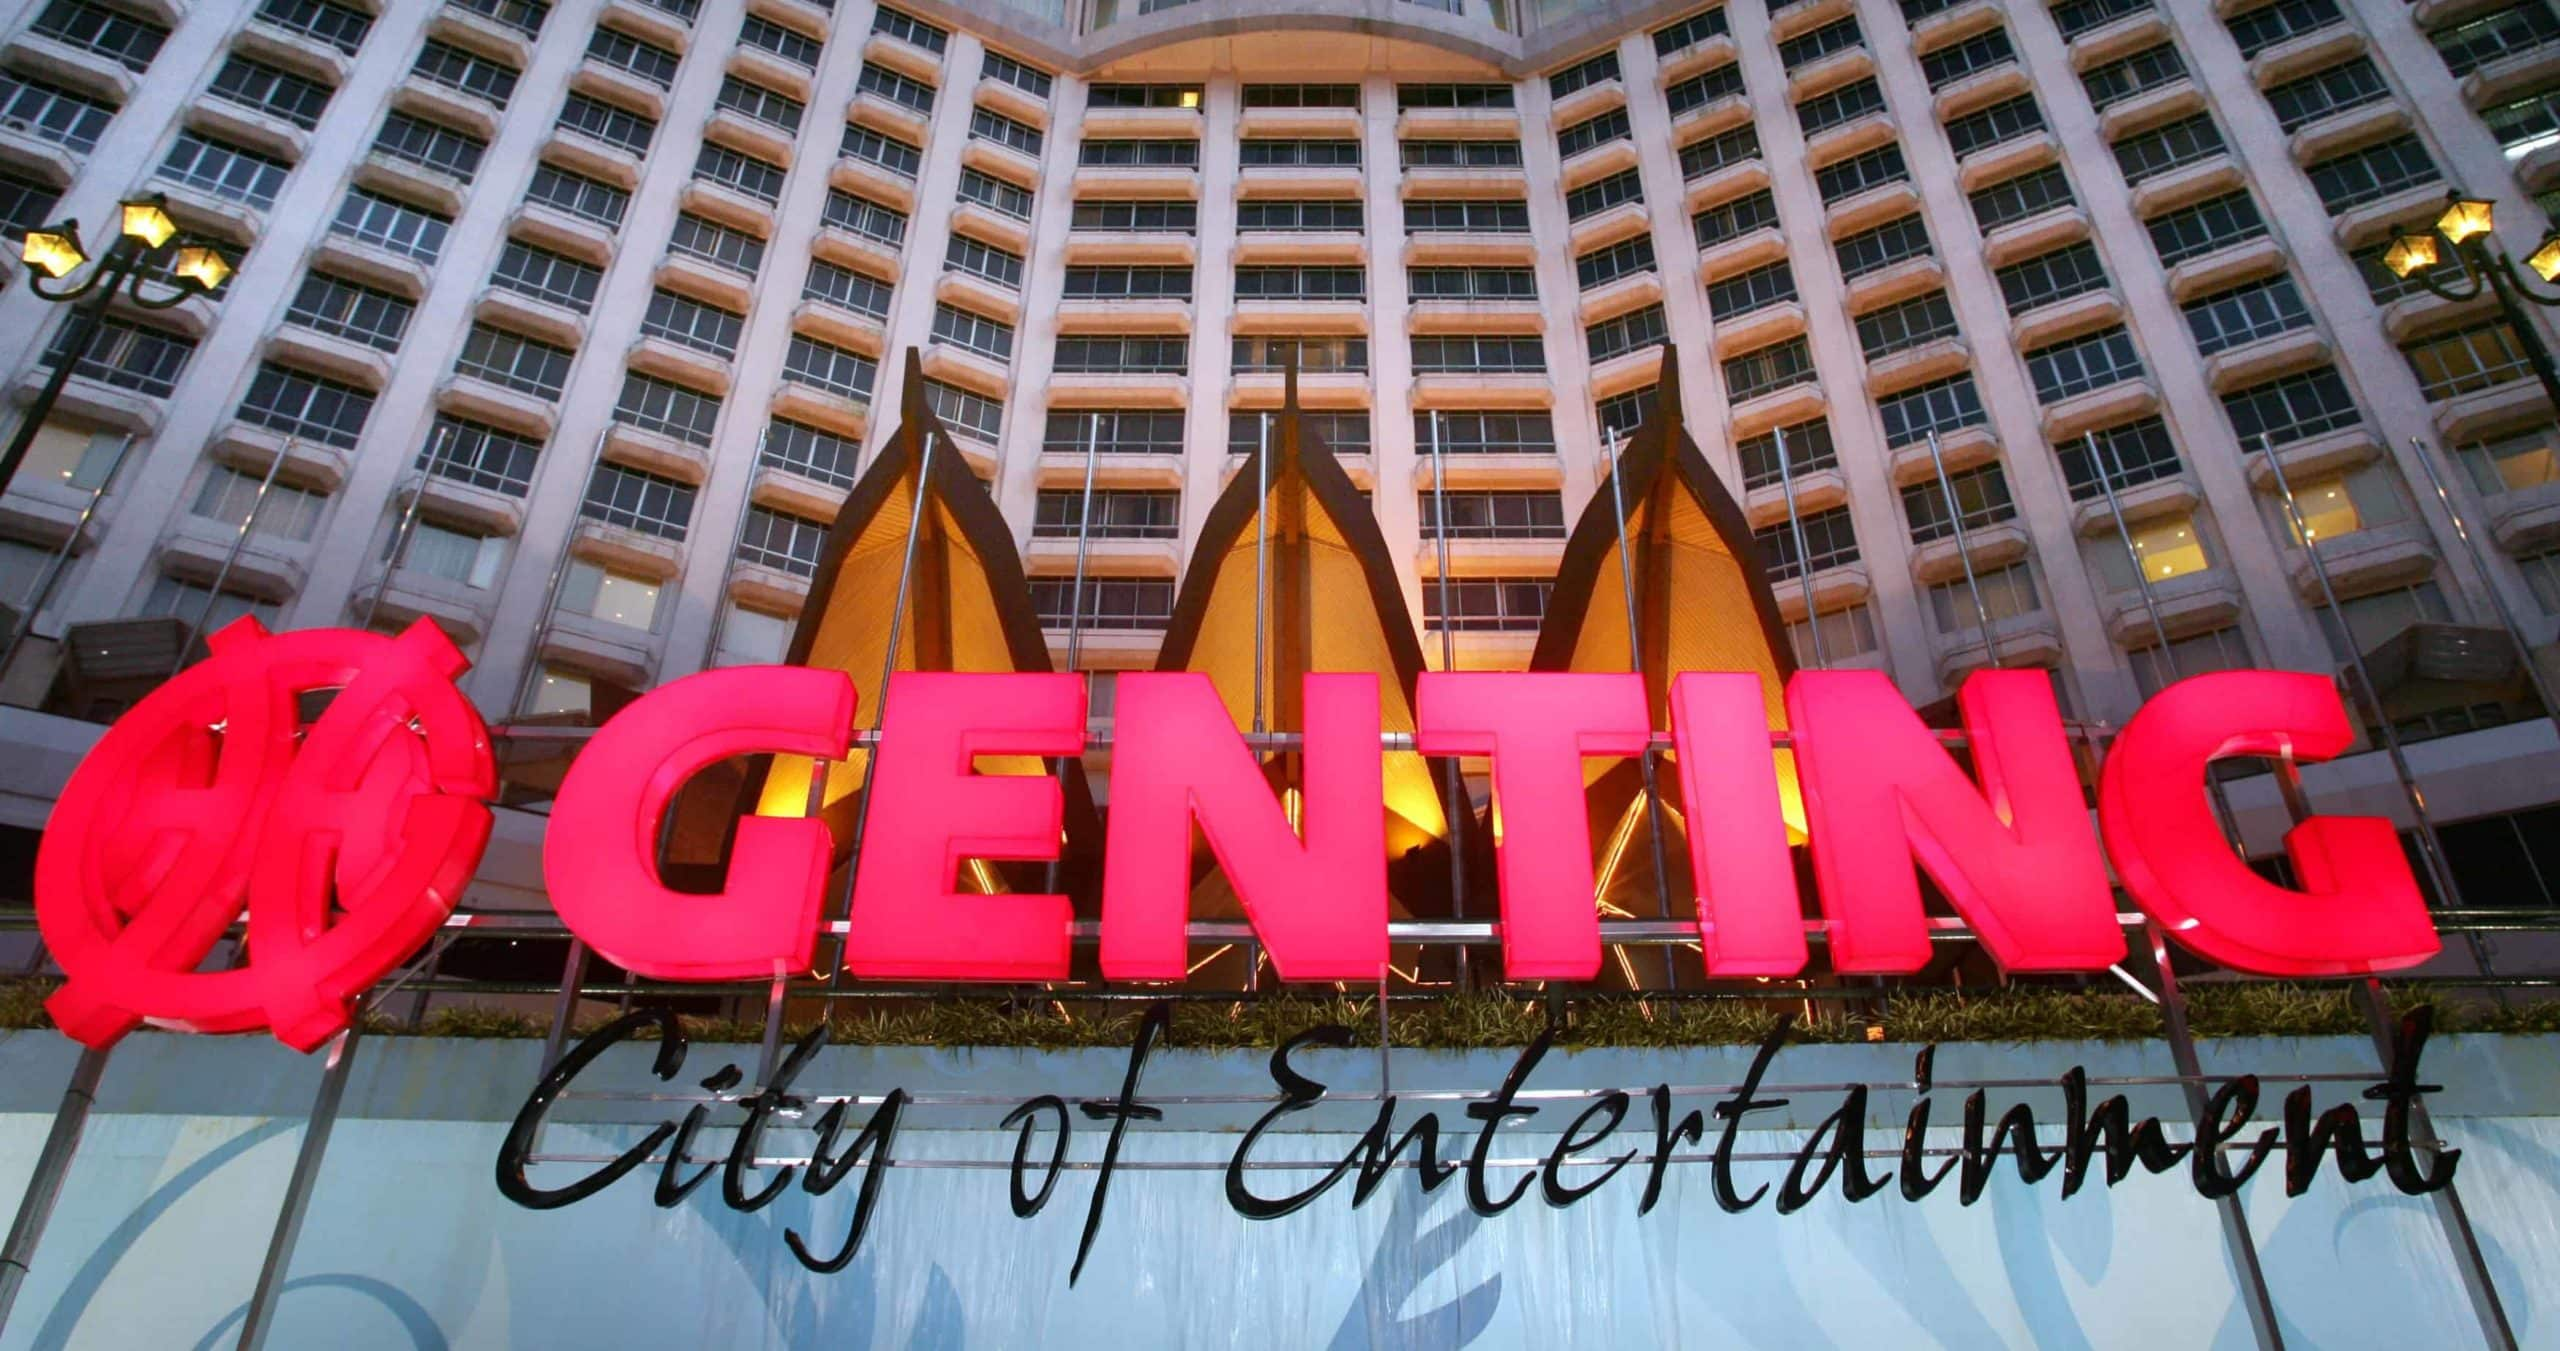 Photo of Genting Empire Resorts Downgraded by Fitch to Negative